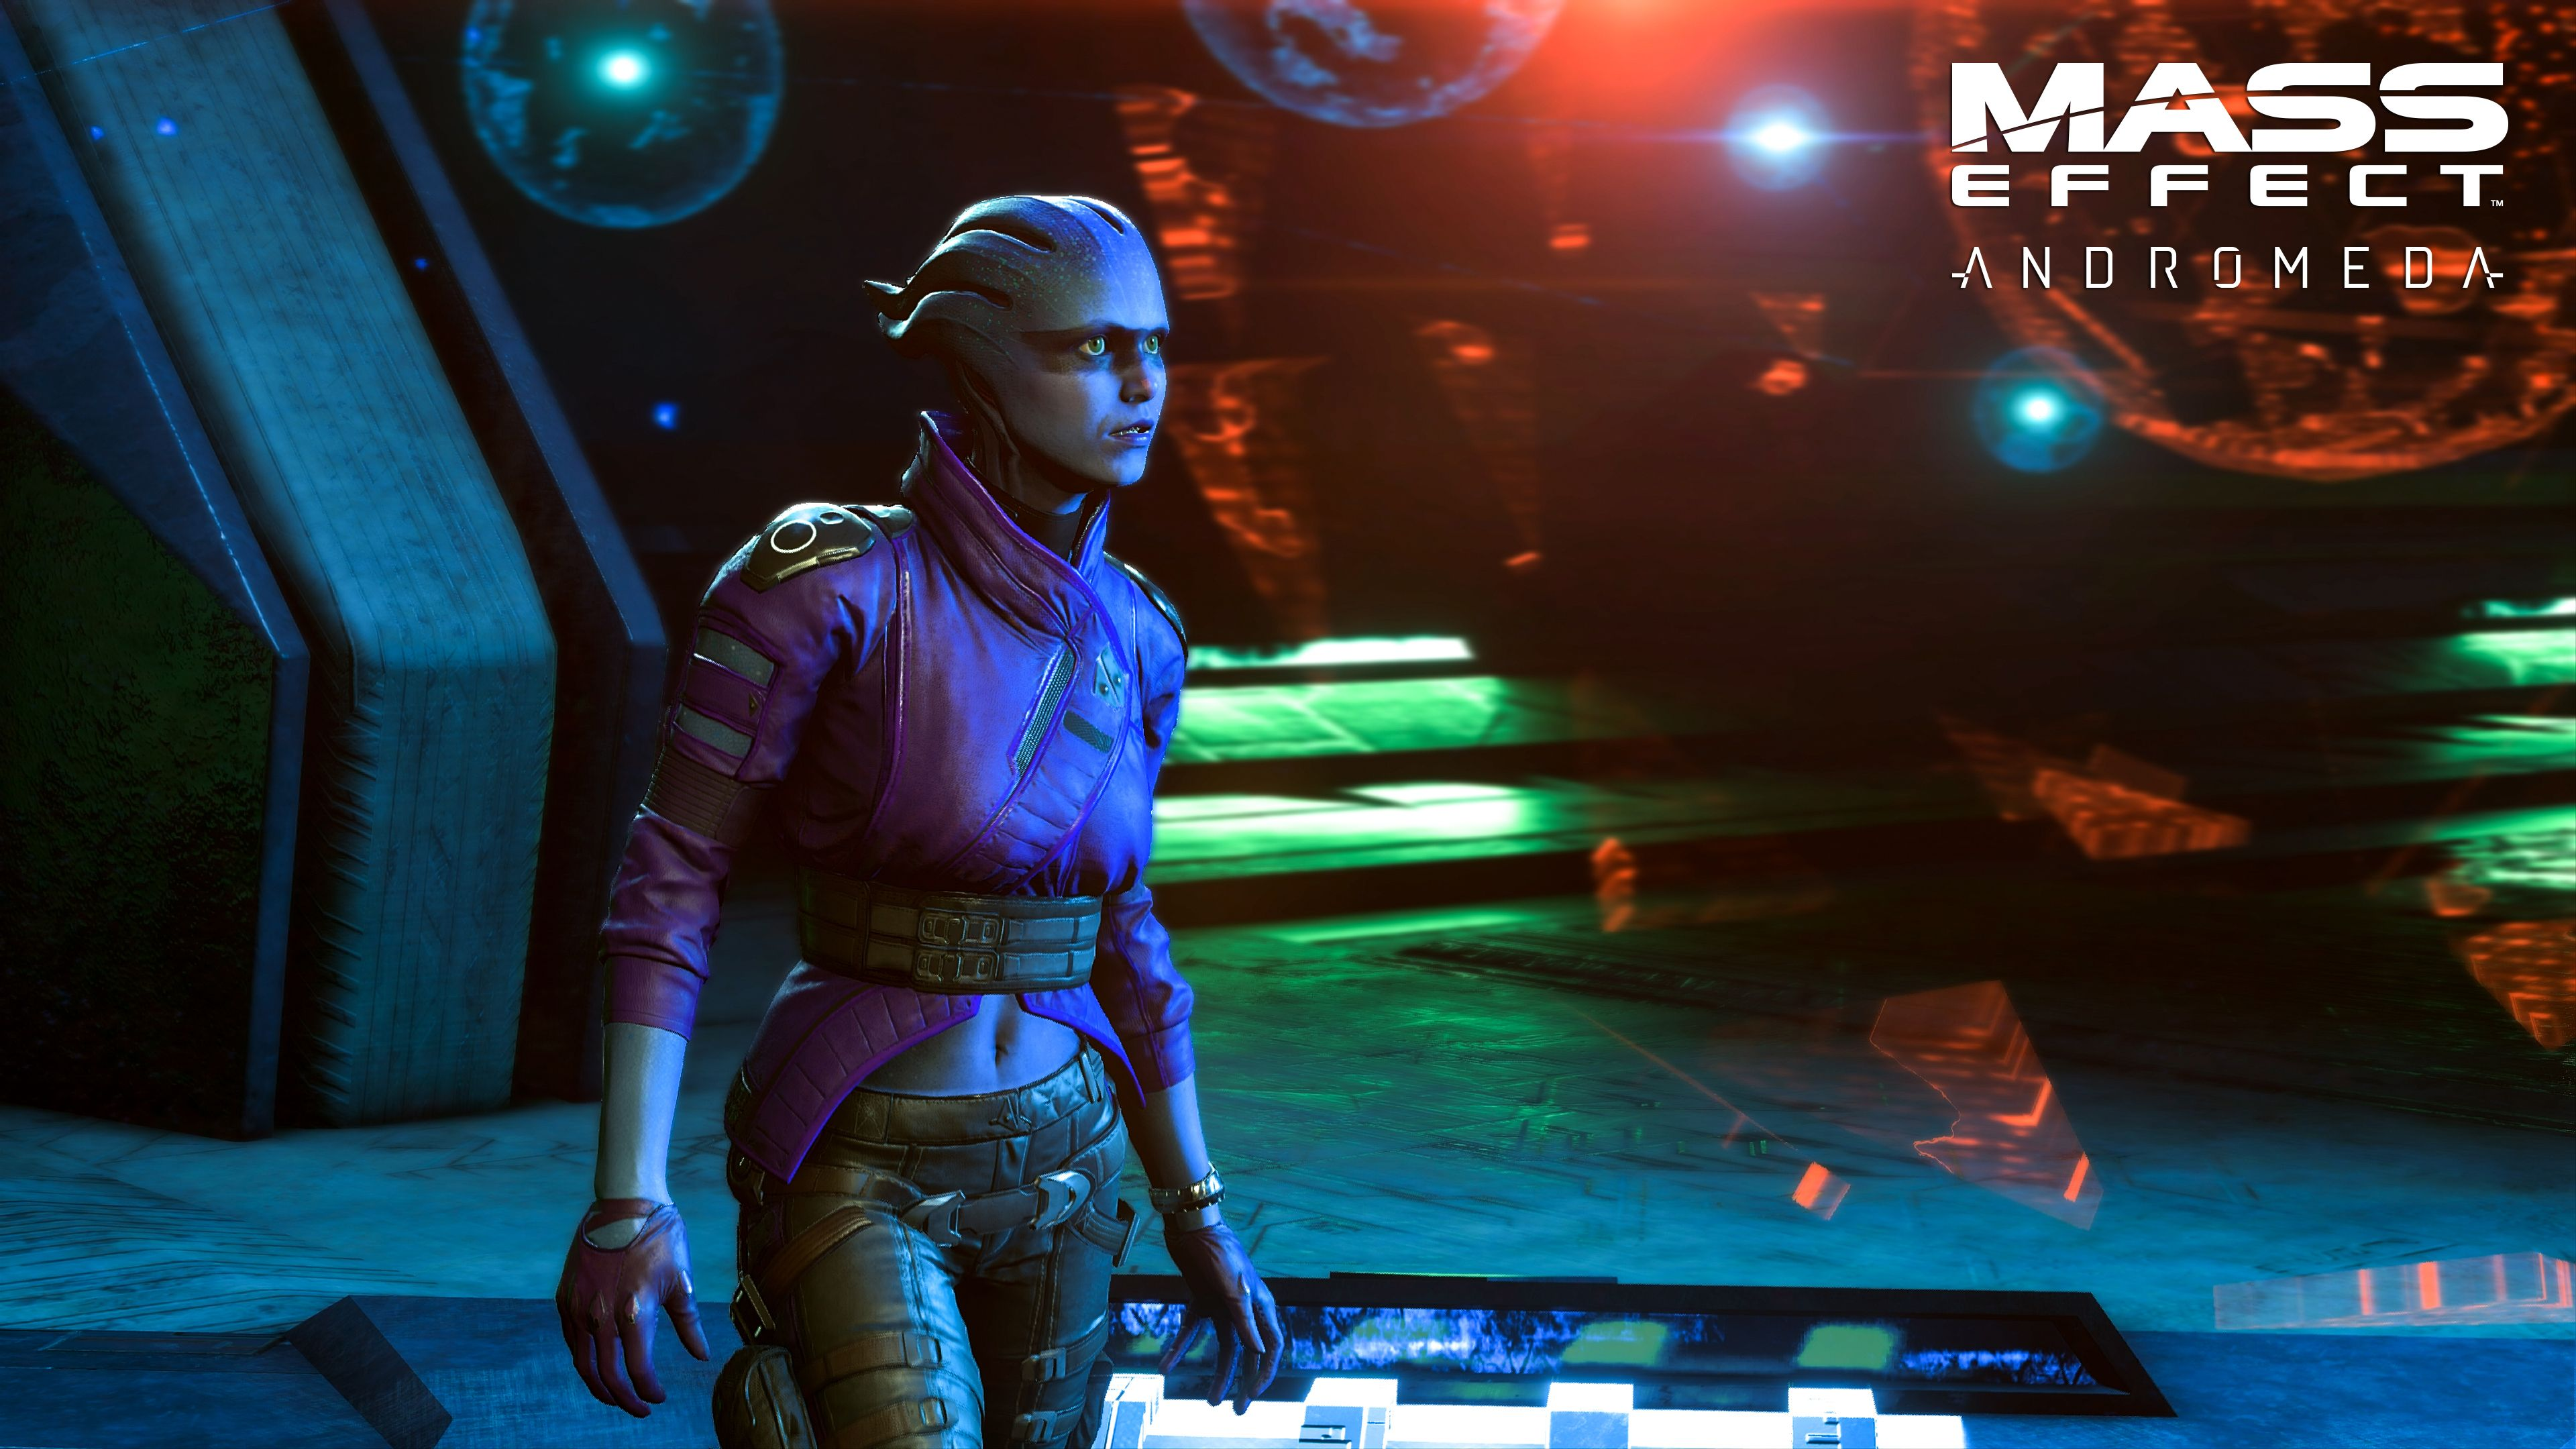 Mass Effect Andromeda (PC) - 4